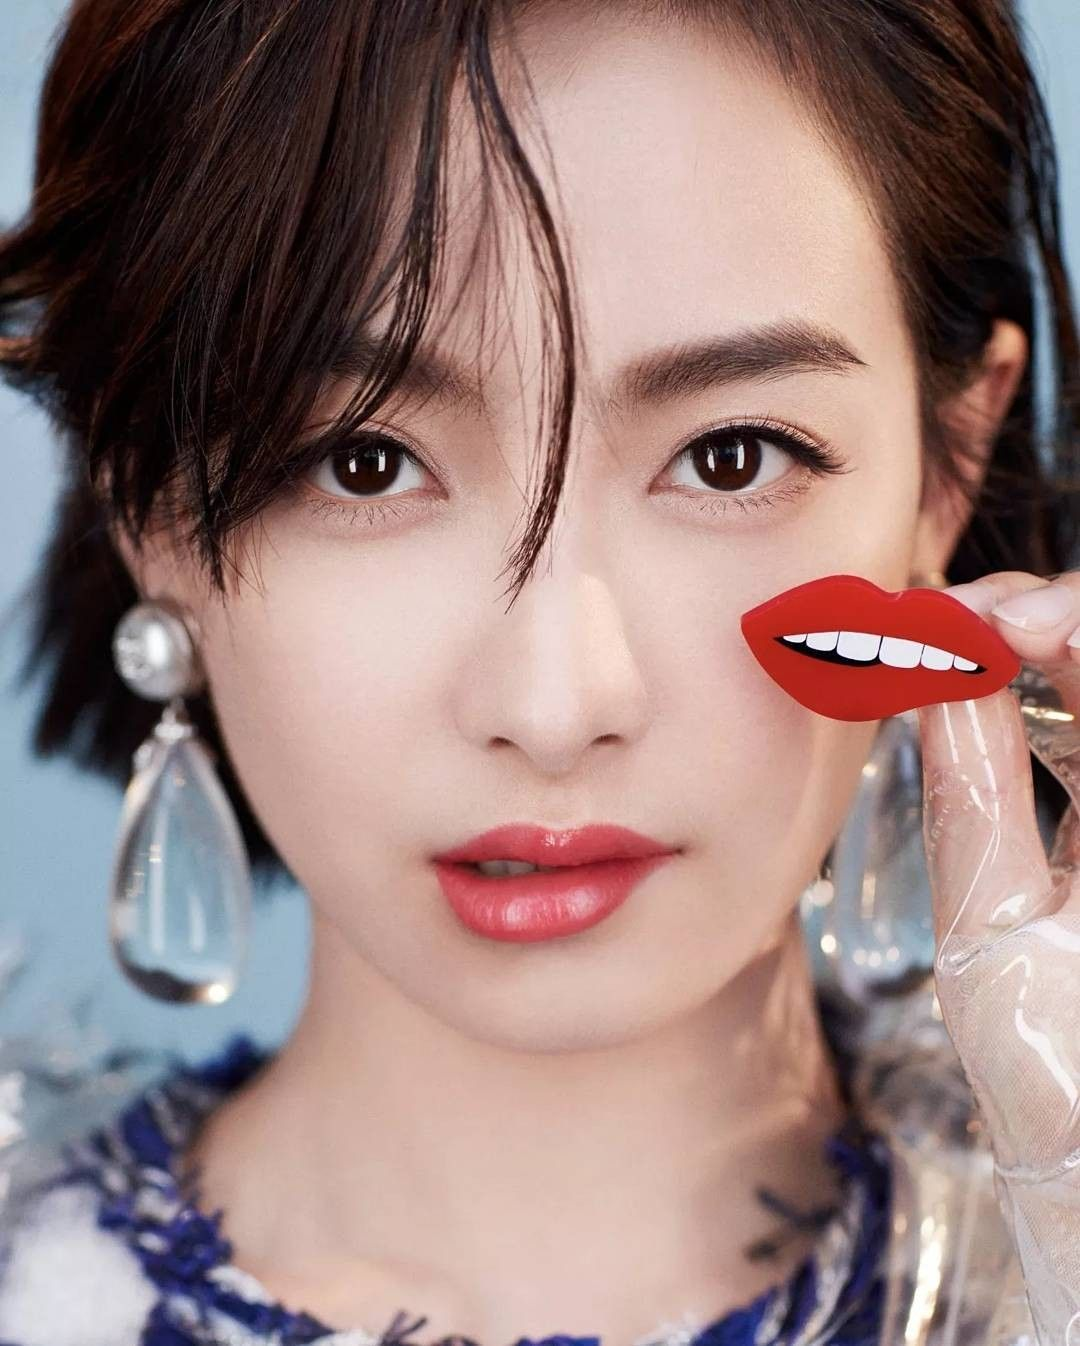 Rumors of f(x)s Victoria asking for contract termination